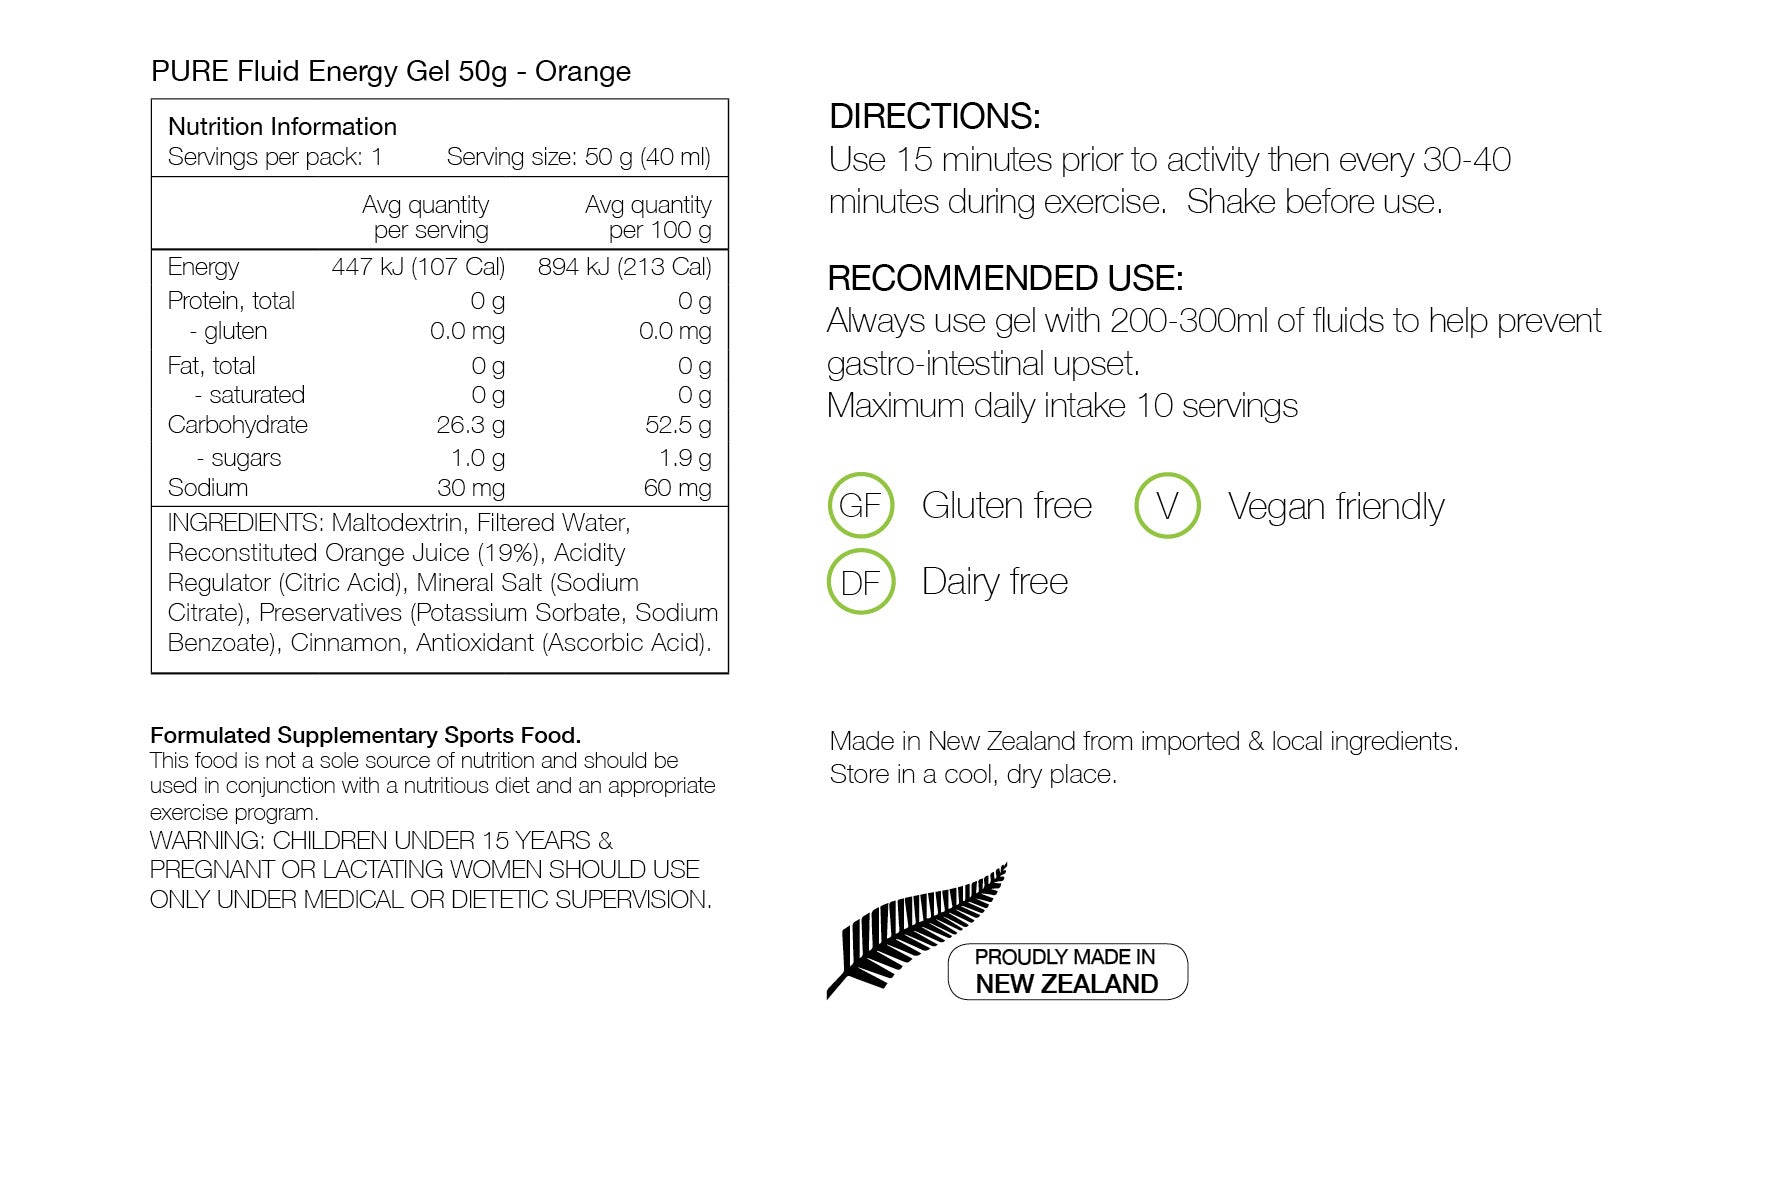 PURE NUTRITION | Fluid Energy Gels 50g - Orange Juice Nutrition Sheet